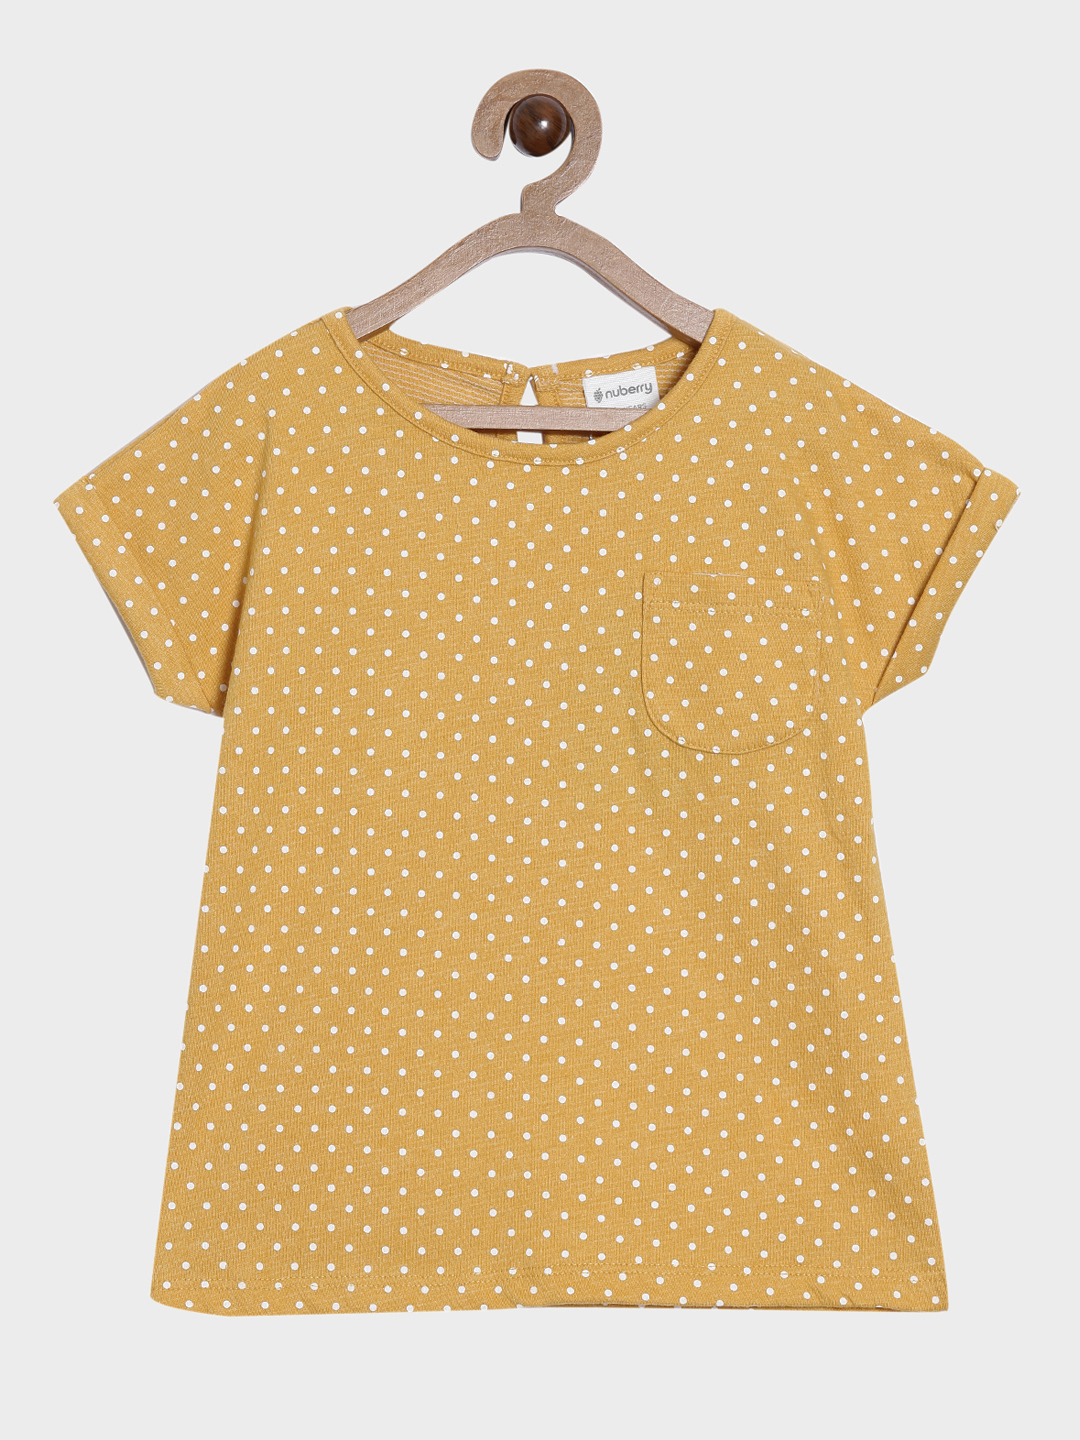 Nuberry   Nuberry Baby Girl 100% cotton Tops